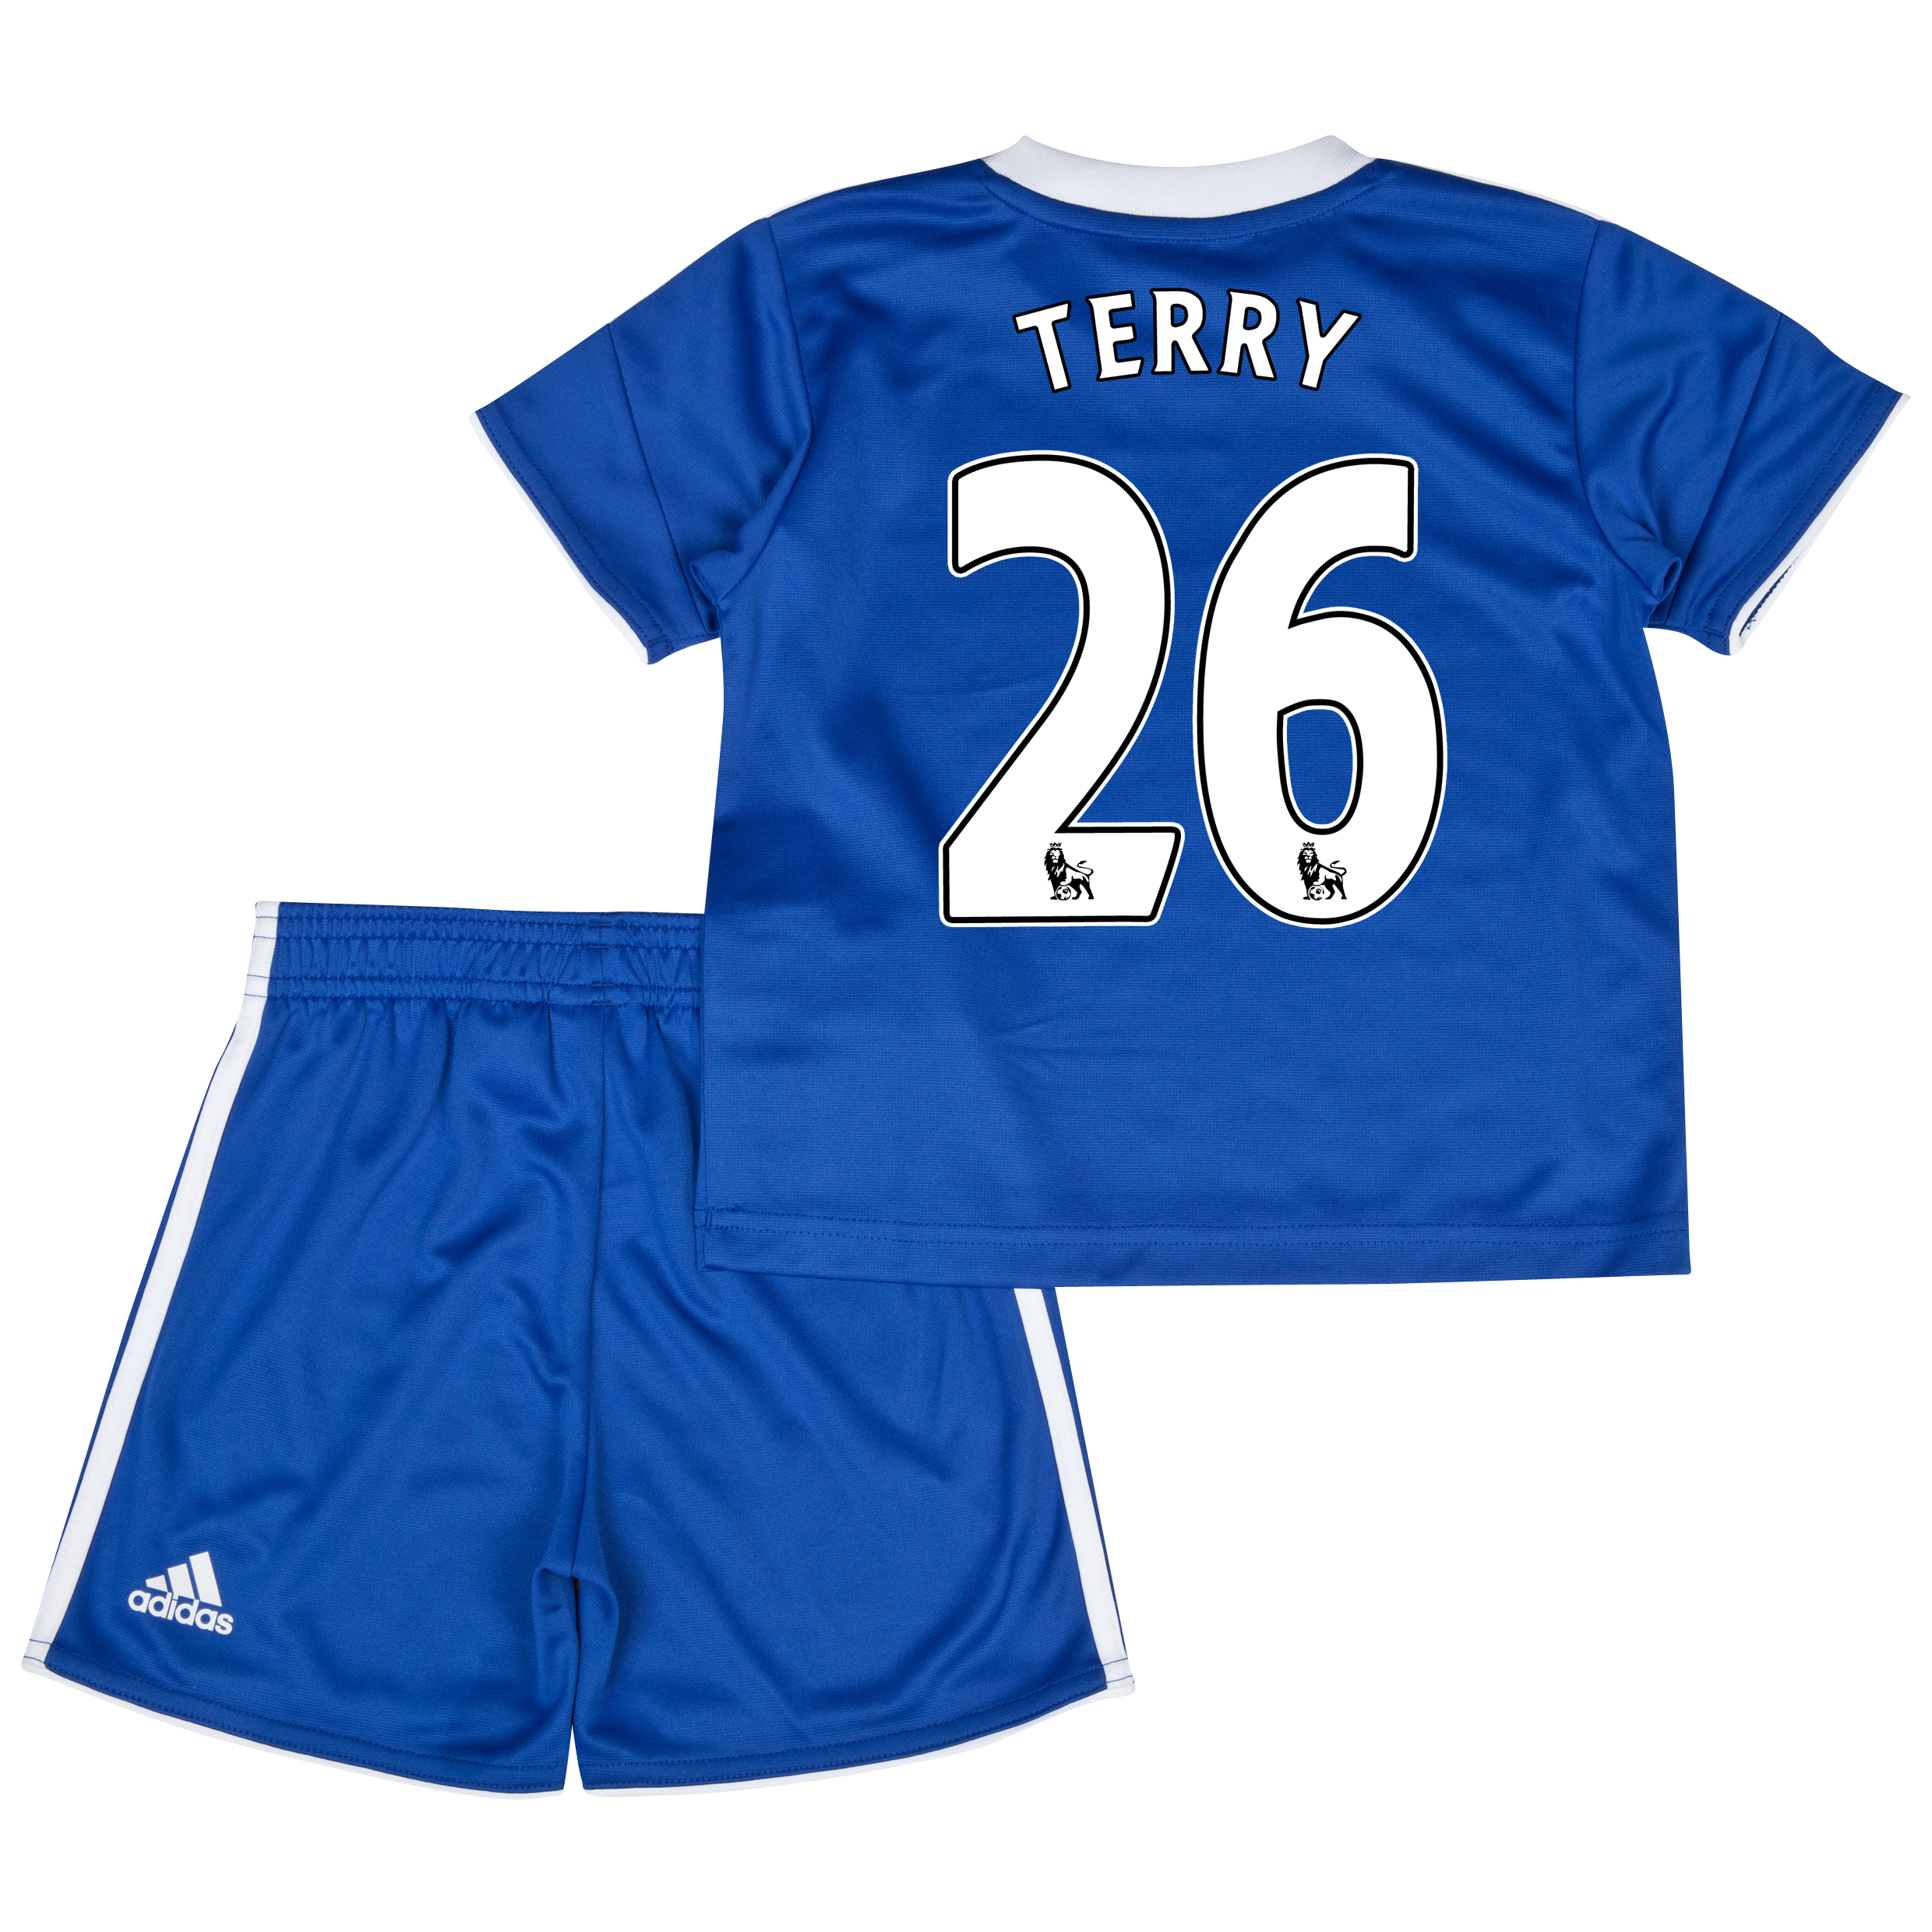 Chelsea Home Mini Kit 2013/14 with Terry 26 printing